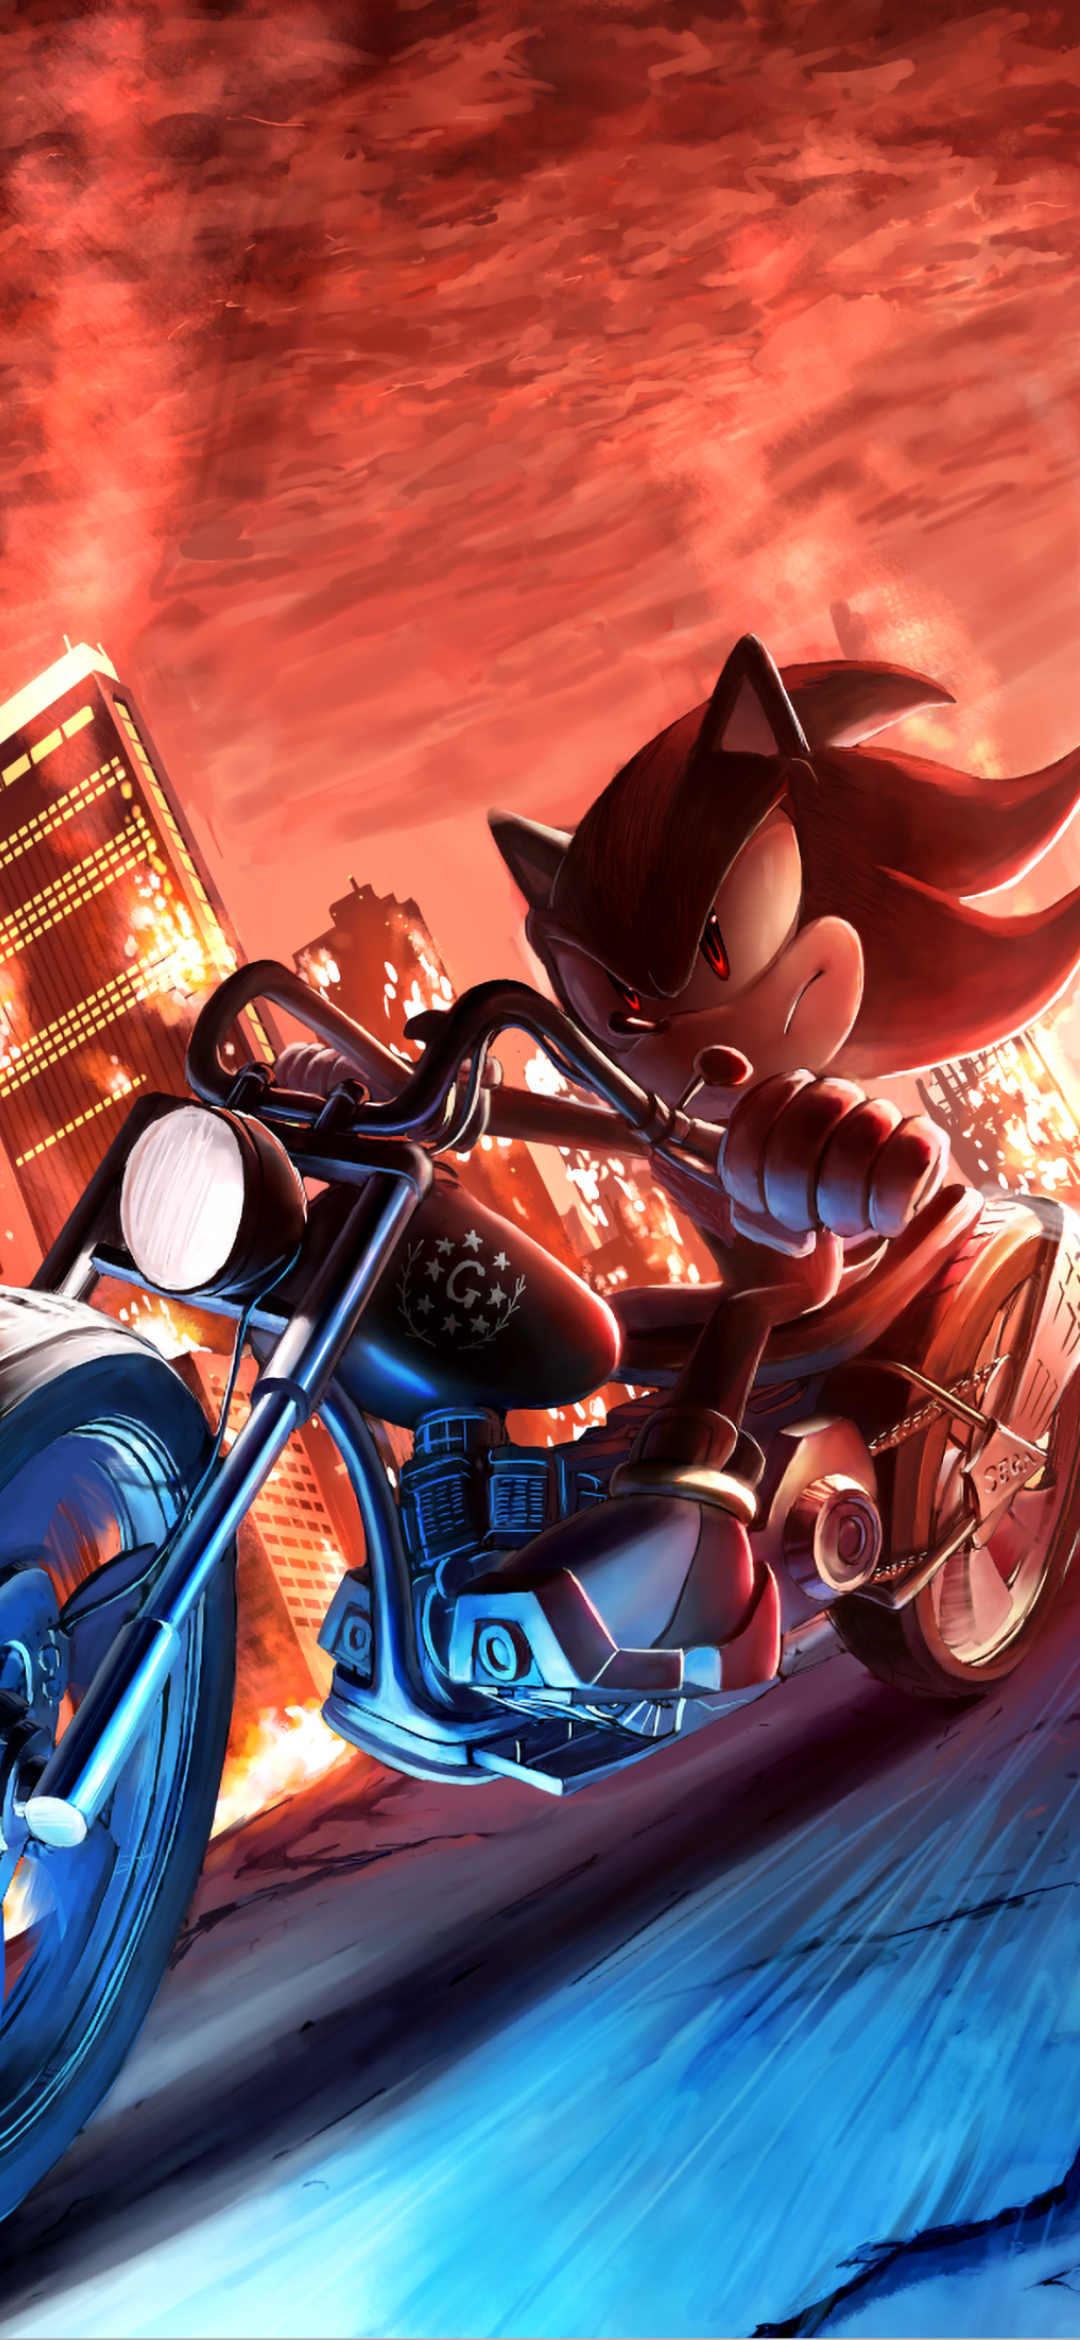 1080x2340 Super Sonic Hedgehog 4k 1080x2340 Resolution Wallpaper Hd Movies 4k Wallpapers Images Photos And Background